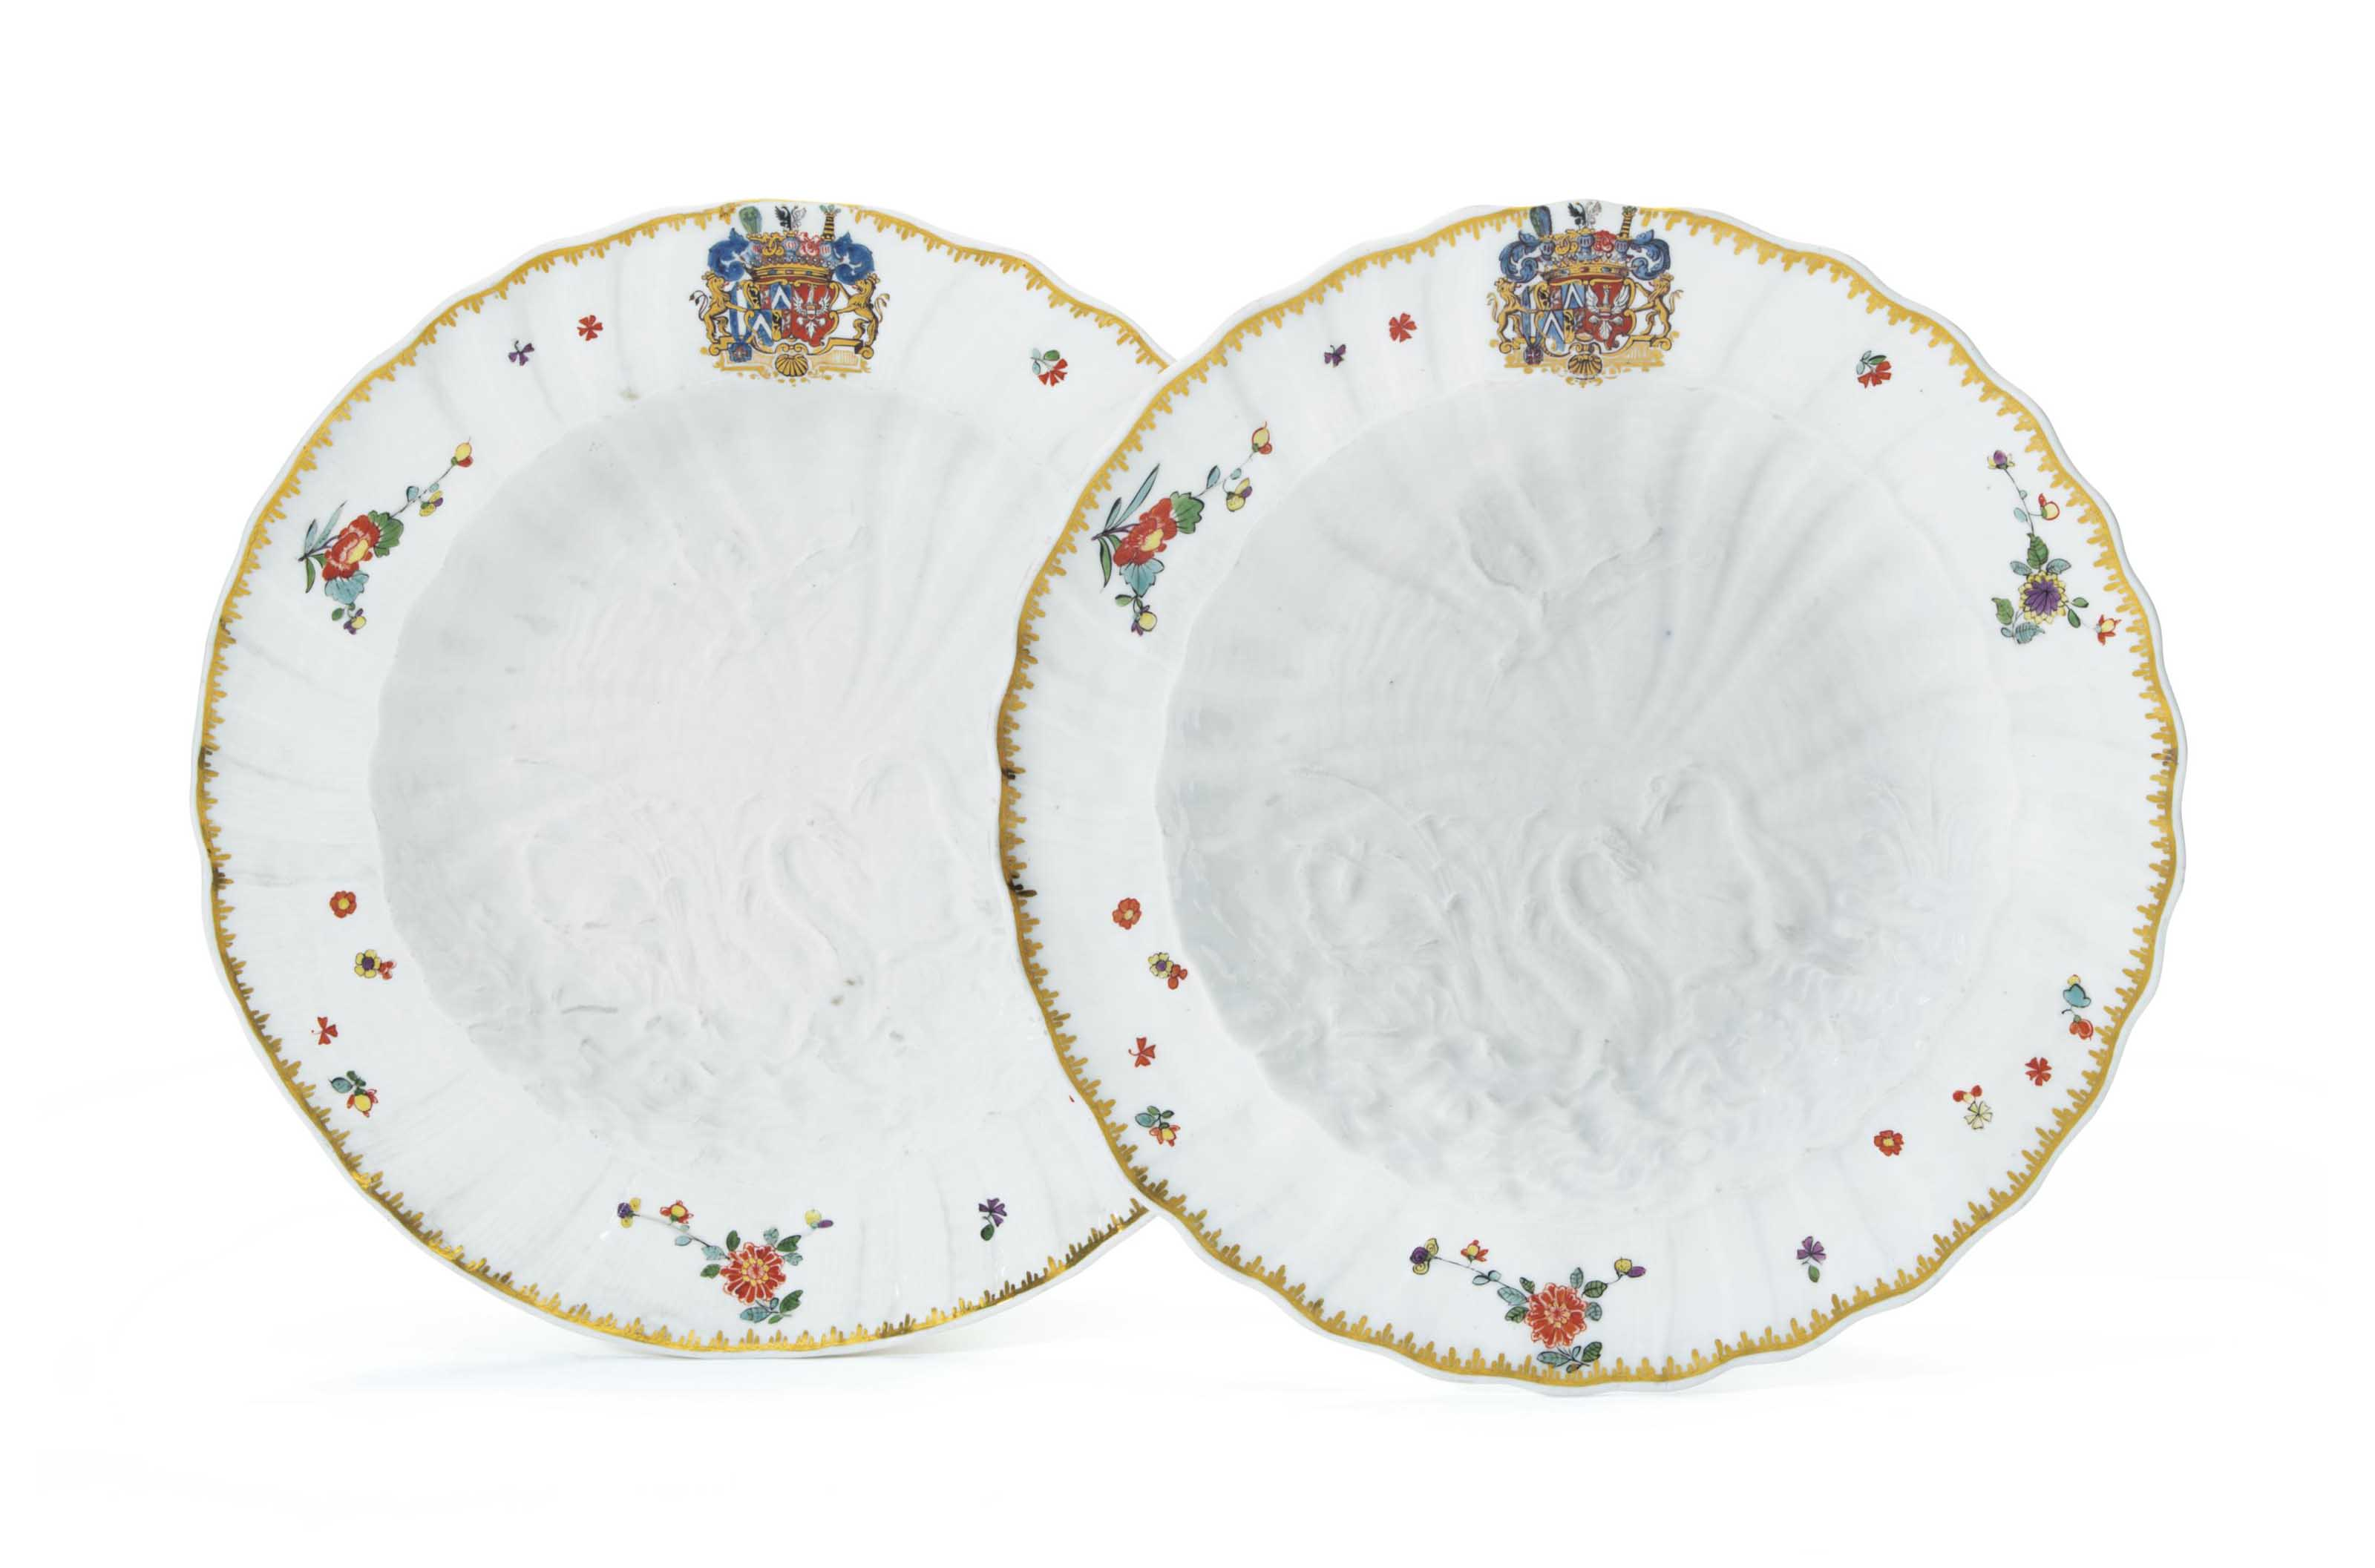 TWO MEISSEN PORCELAIN PLATES FROM THE 'SWAN SERVICE'